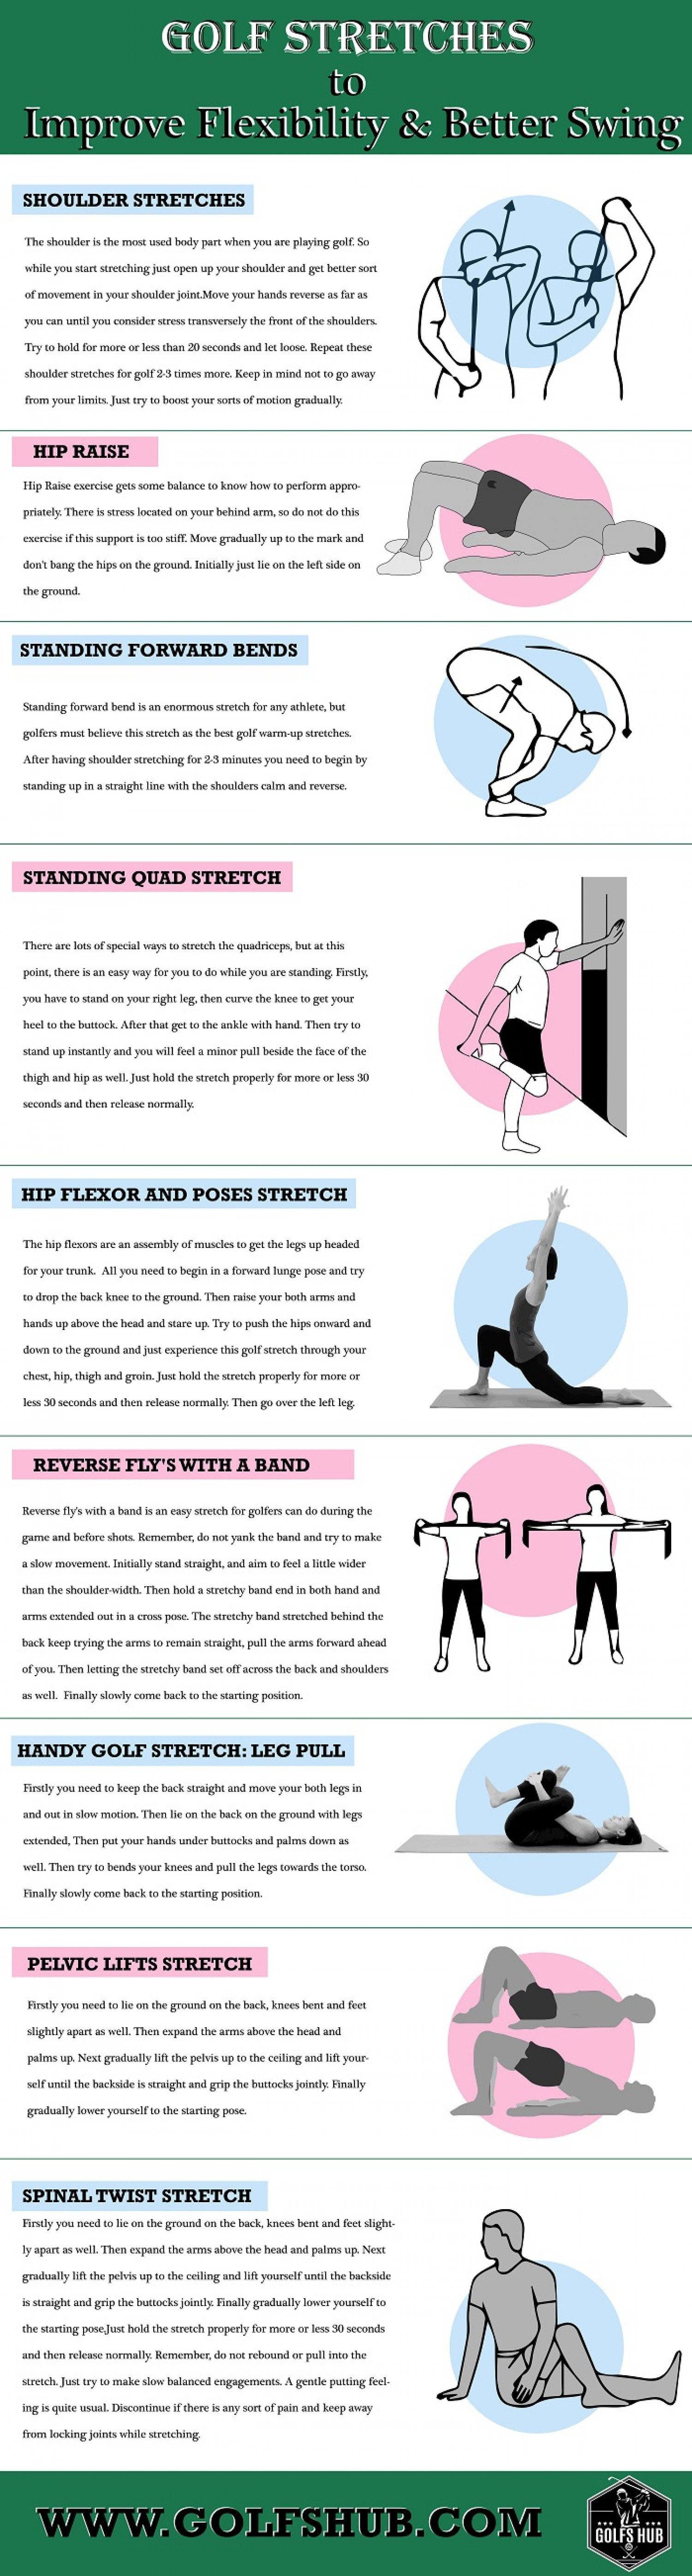 Golf Stretches to Improve Flexibility & Better Swing Infographic